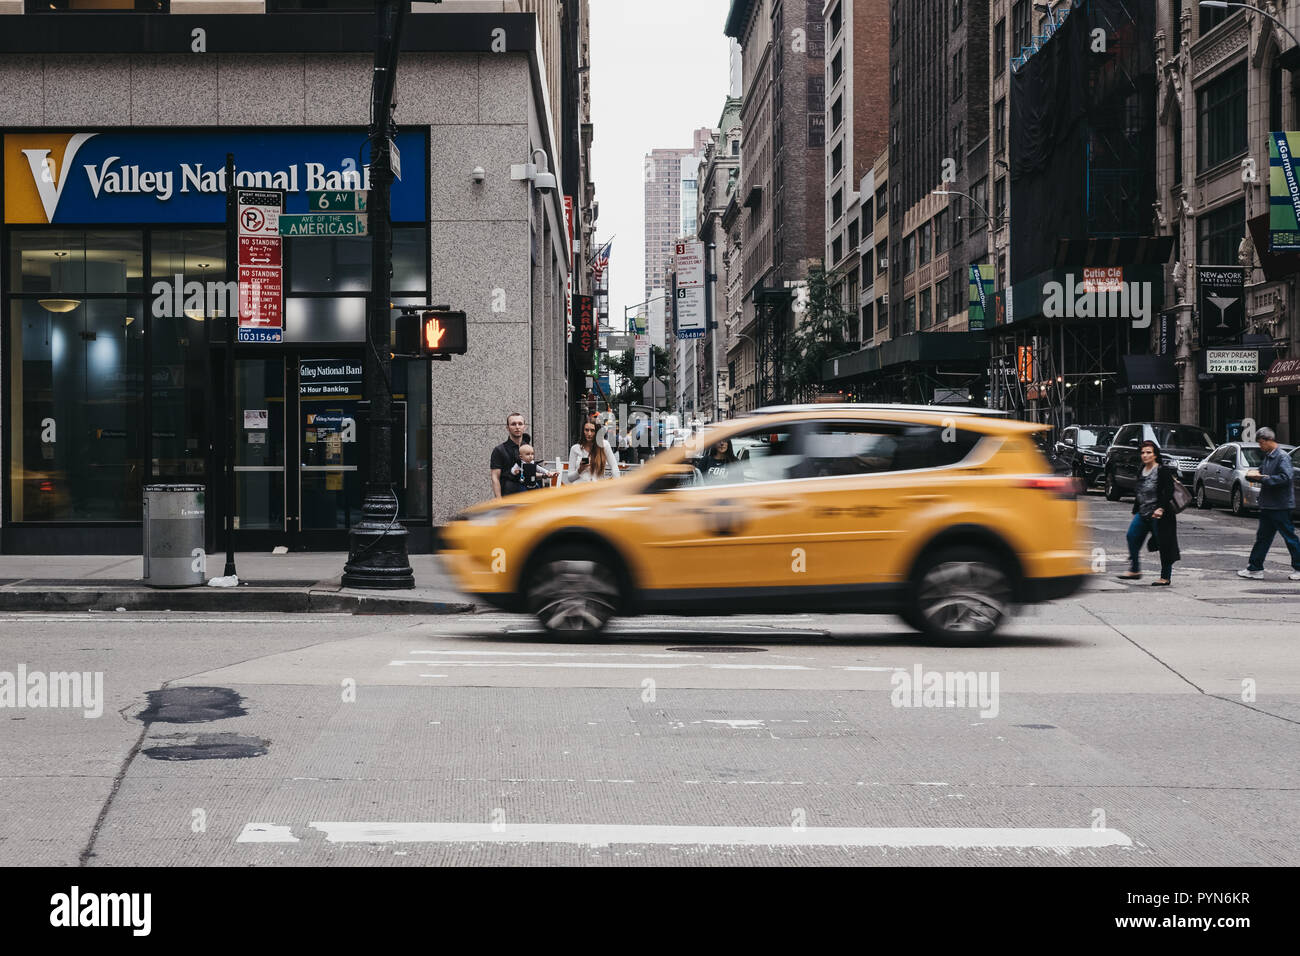 Drap New York New York Usa May 28 2018 Yellow Taxi On The Street In New